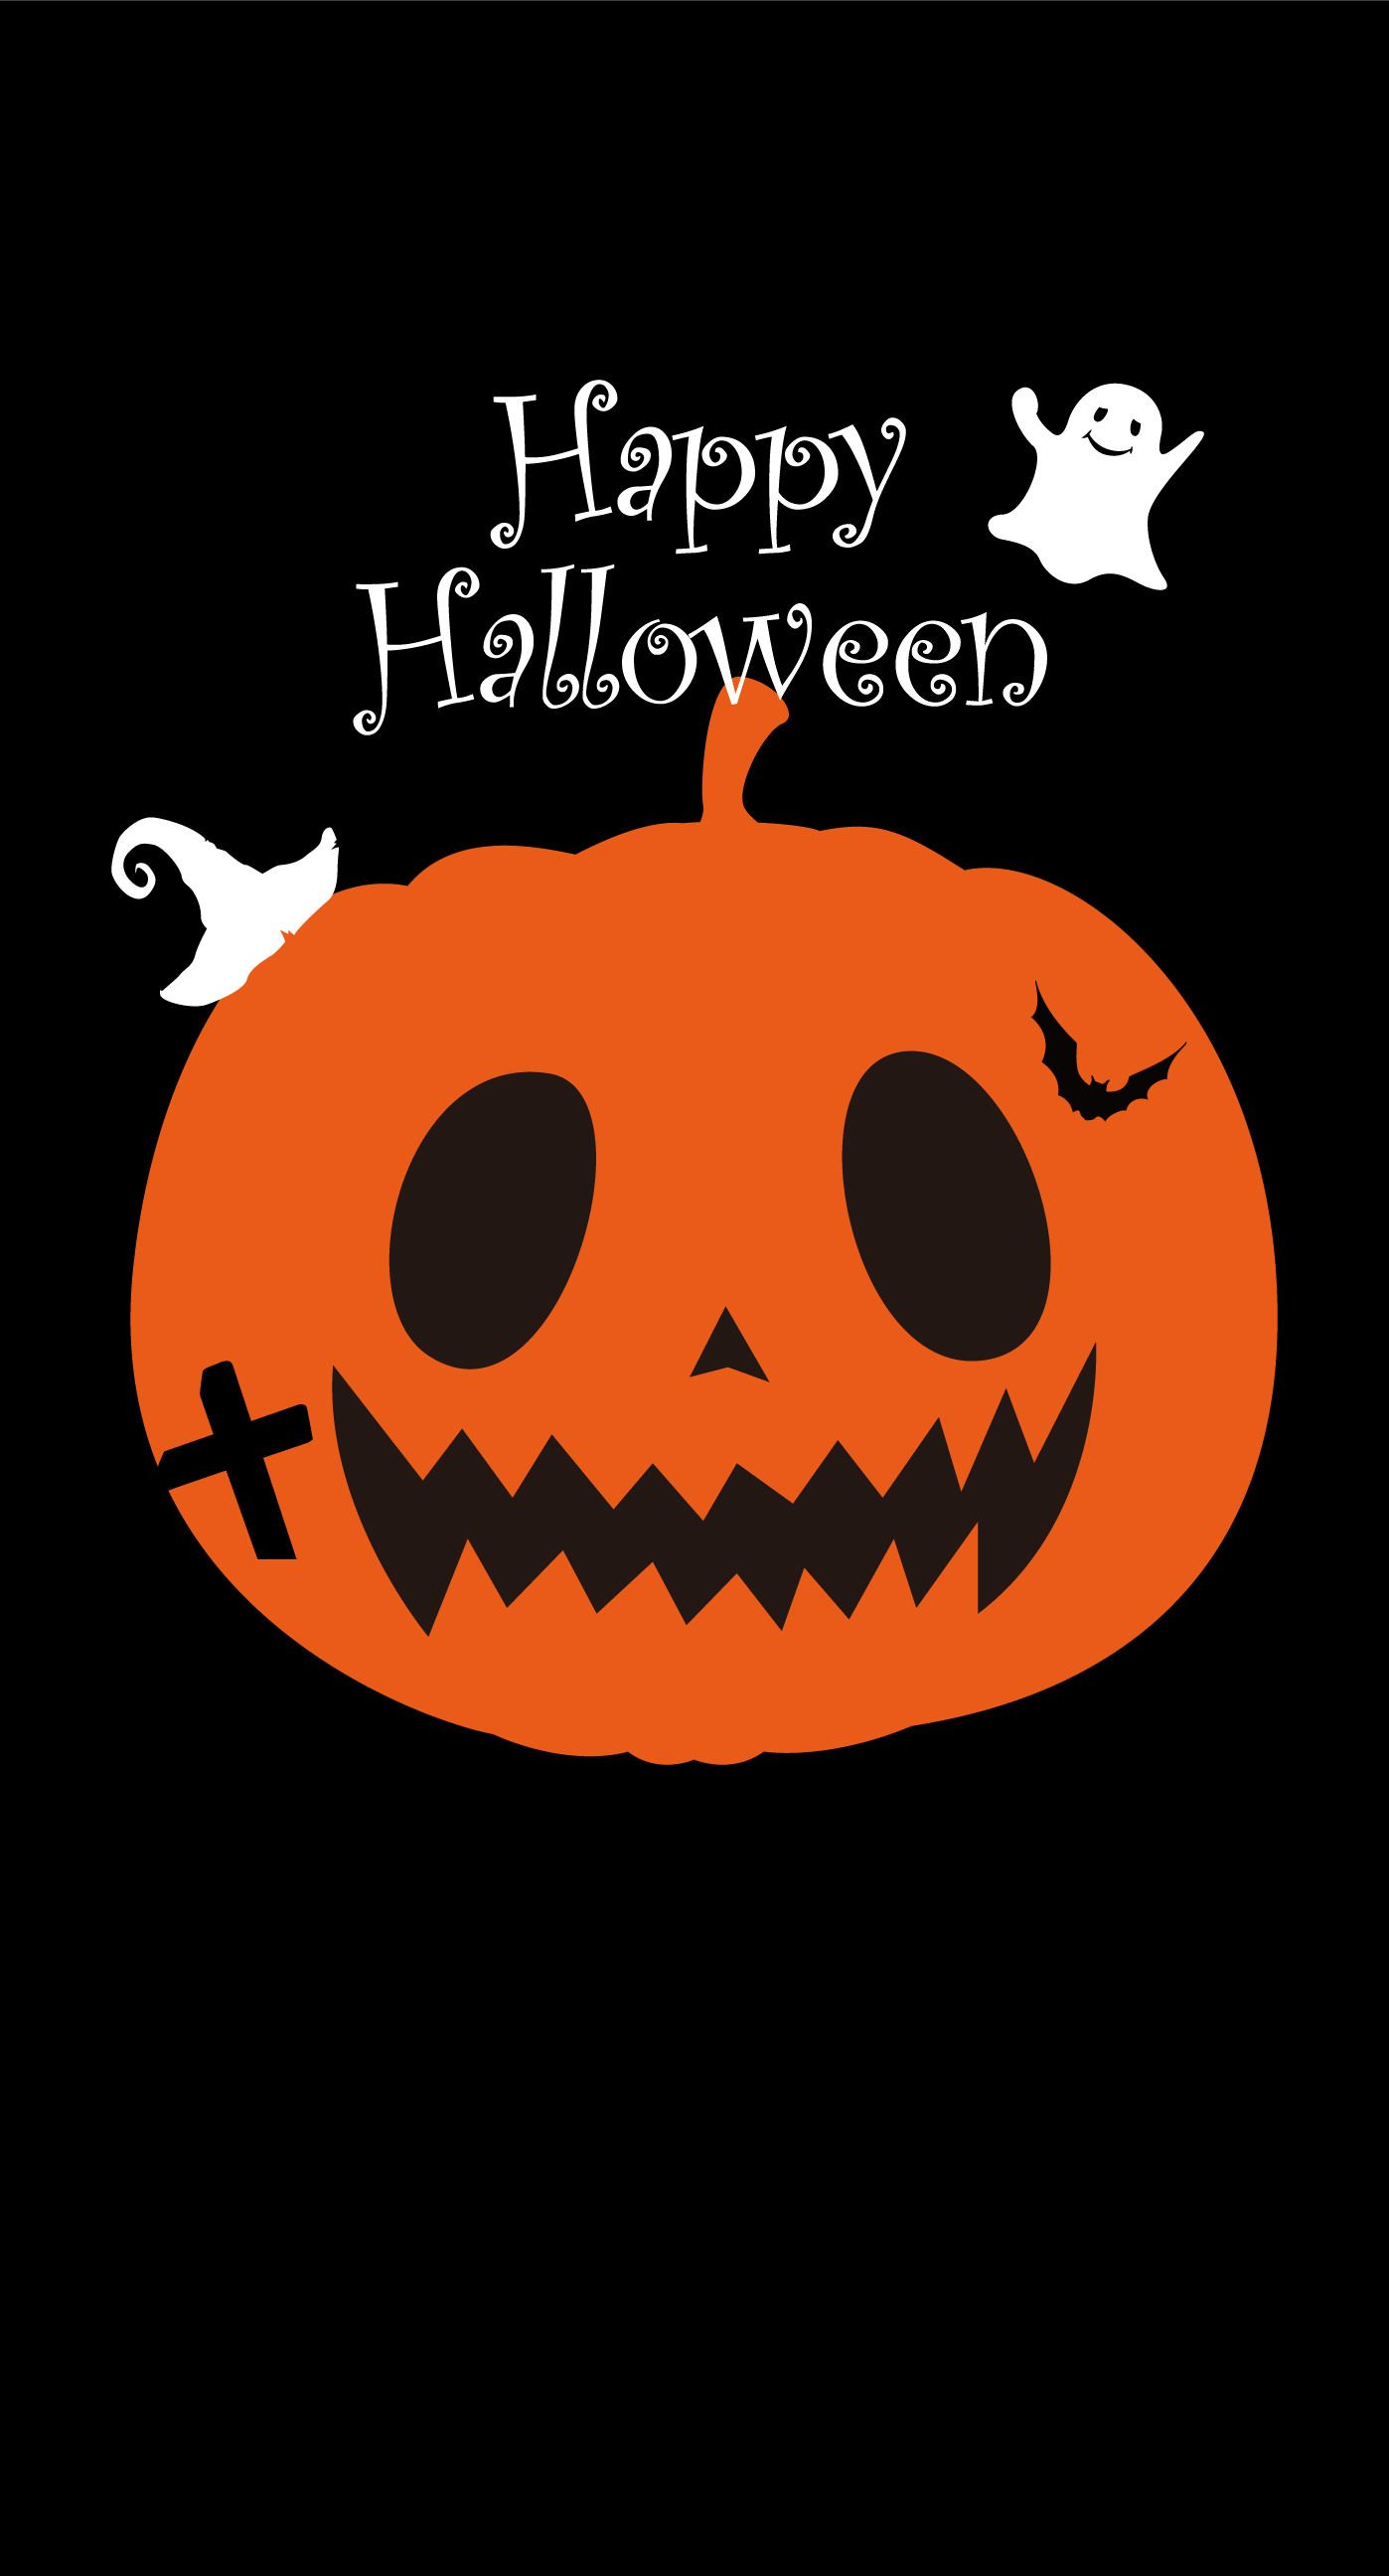 Must see Wallpaper Halloween Iphone 6s Plus - c42c2bc40727287e0c4025ac5cabe6c2  HD_813319.jpg